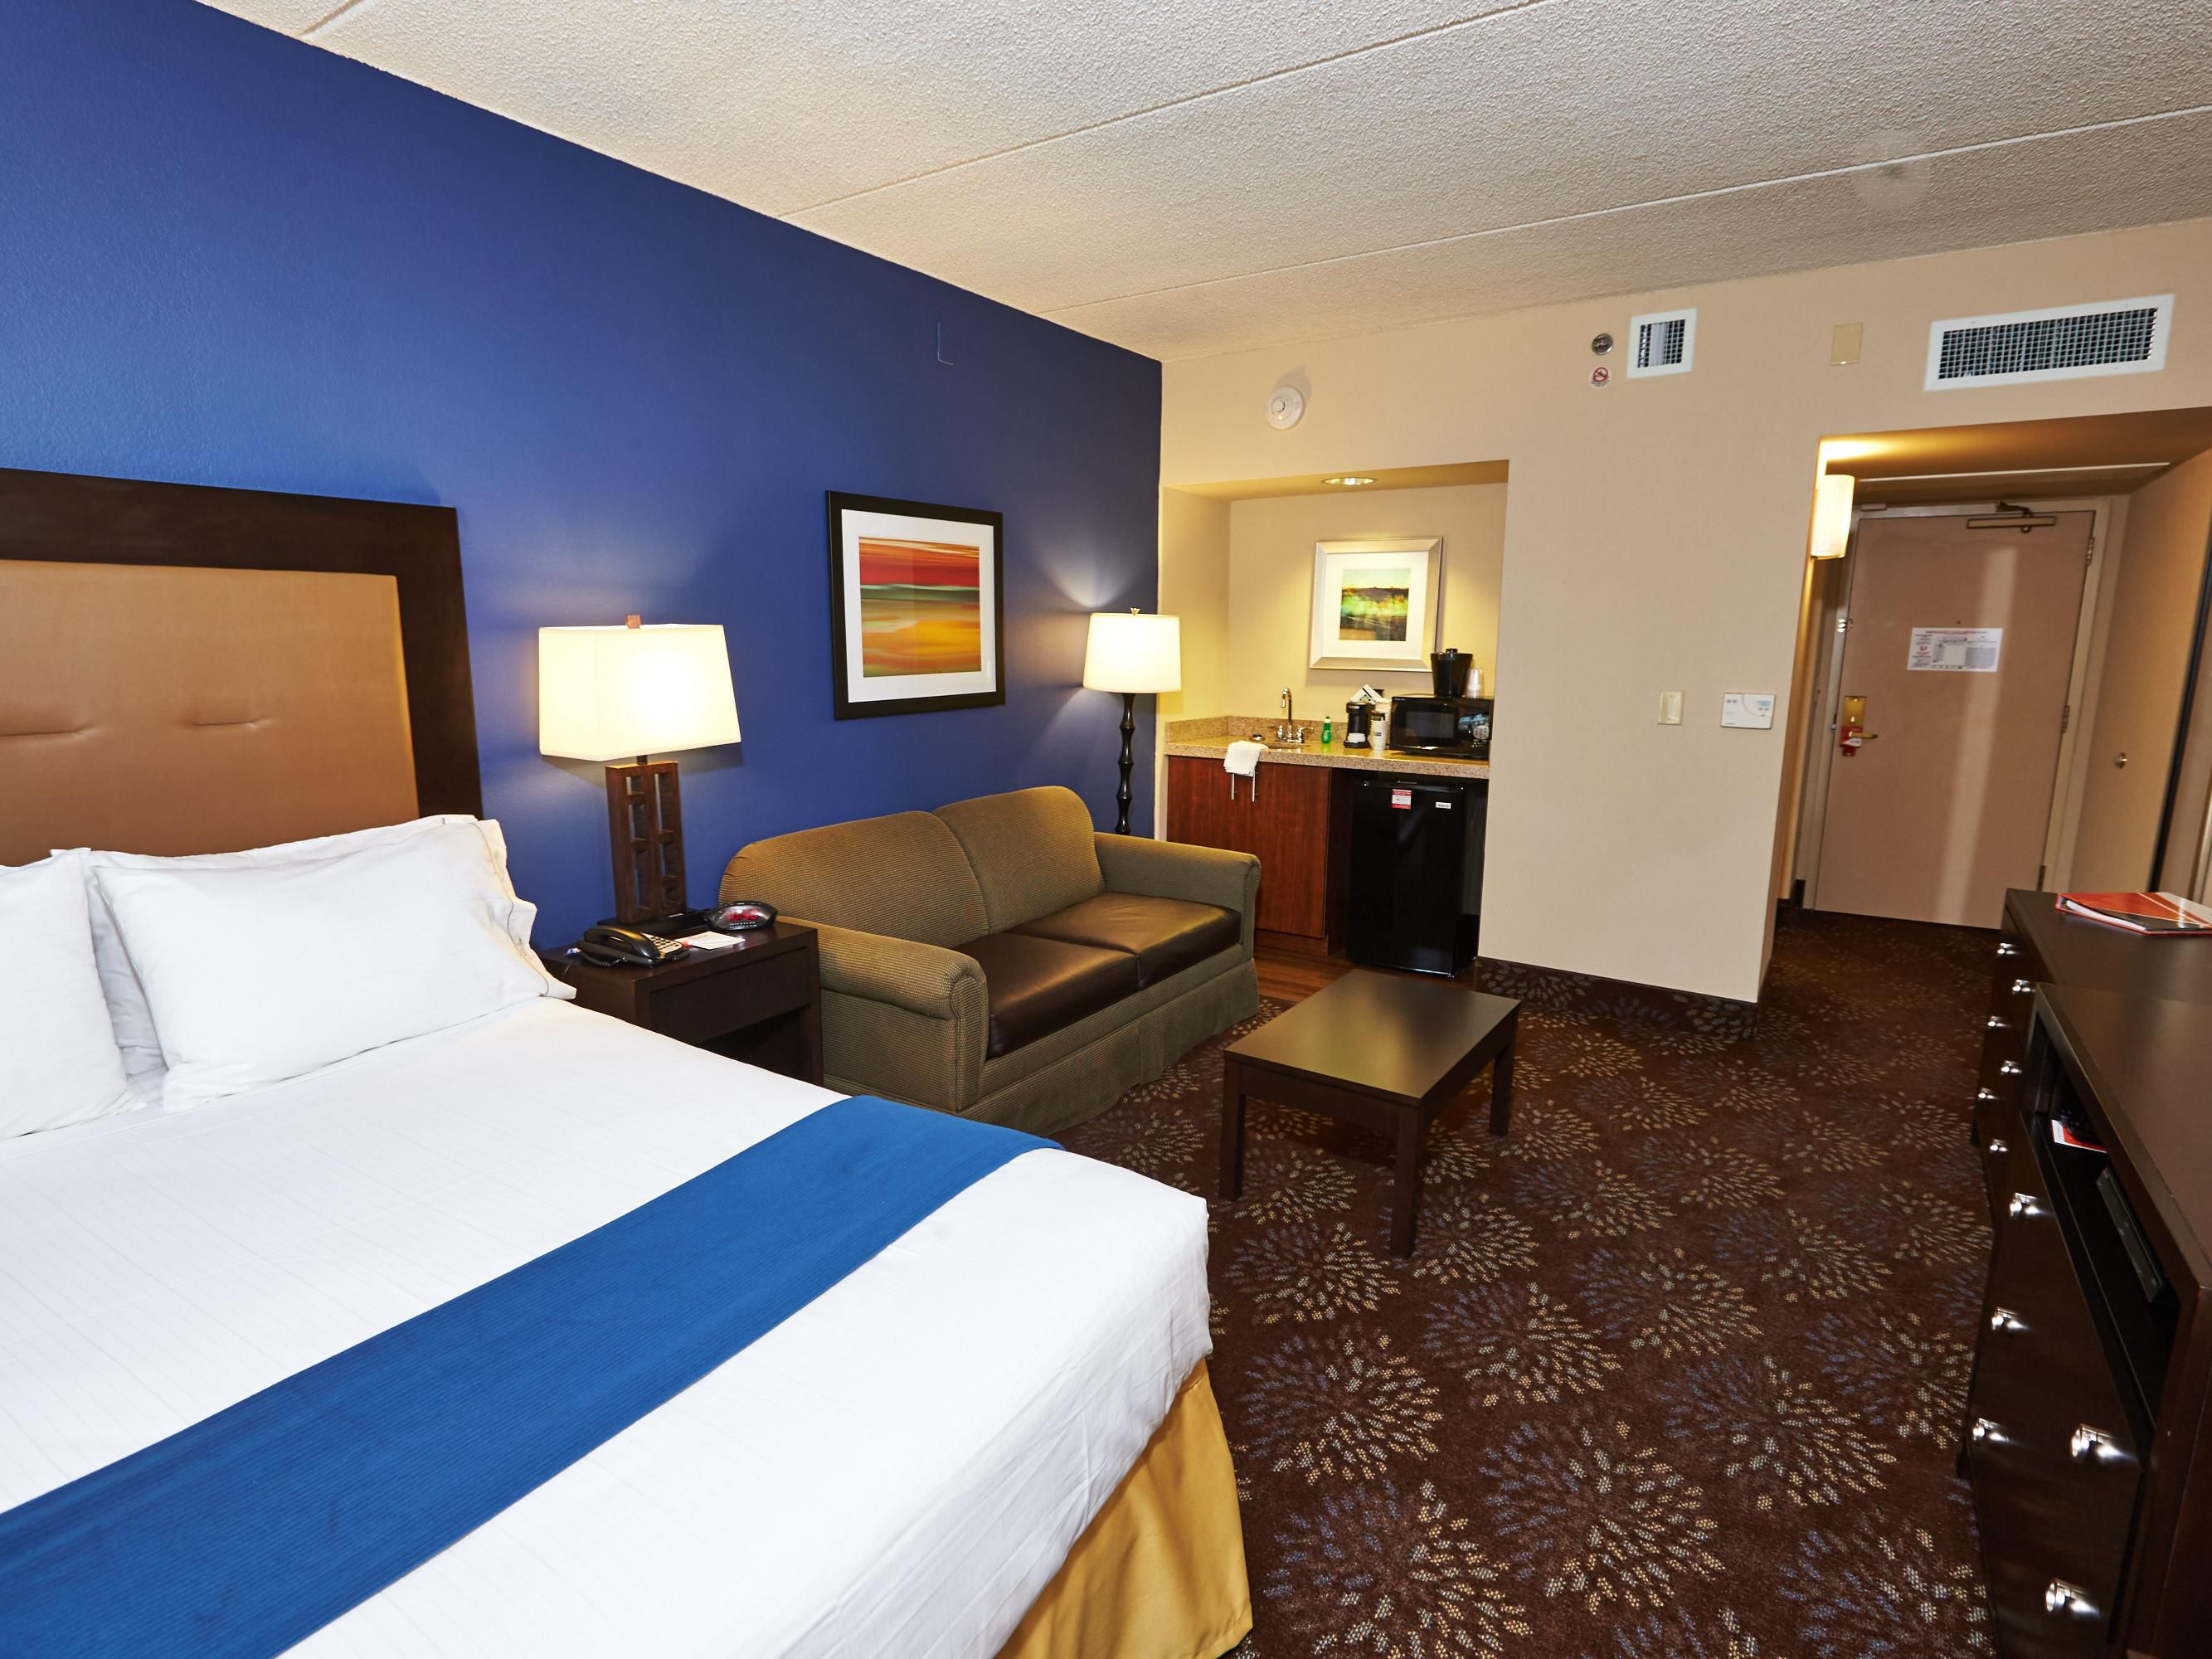 Rooms And Rates For Ihg Army Hotels Powless House Sam Houston